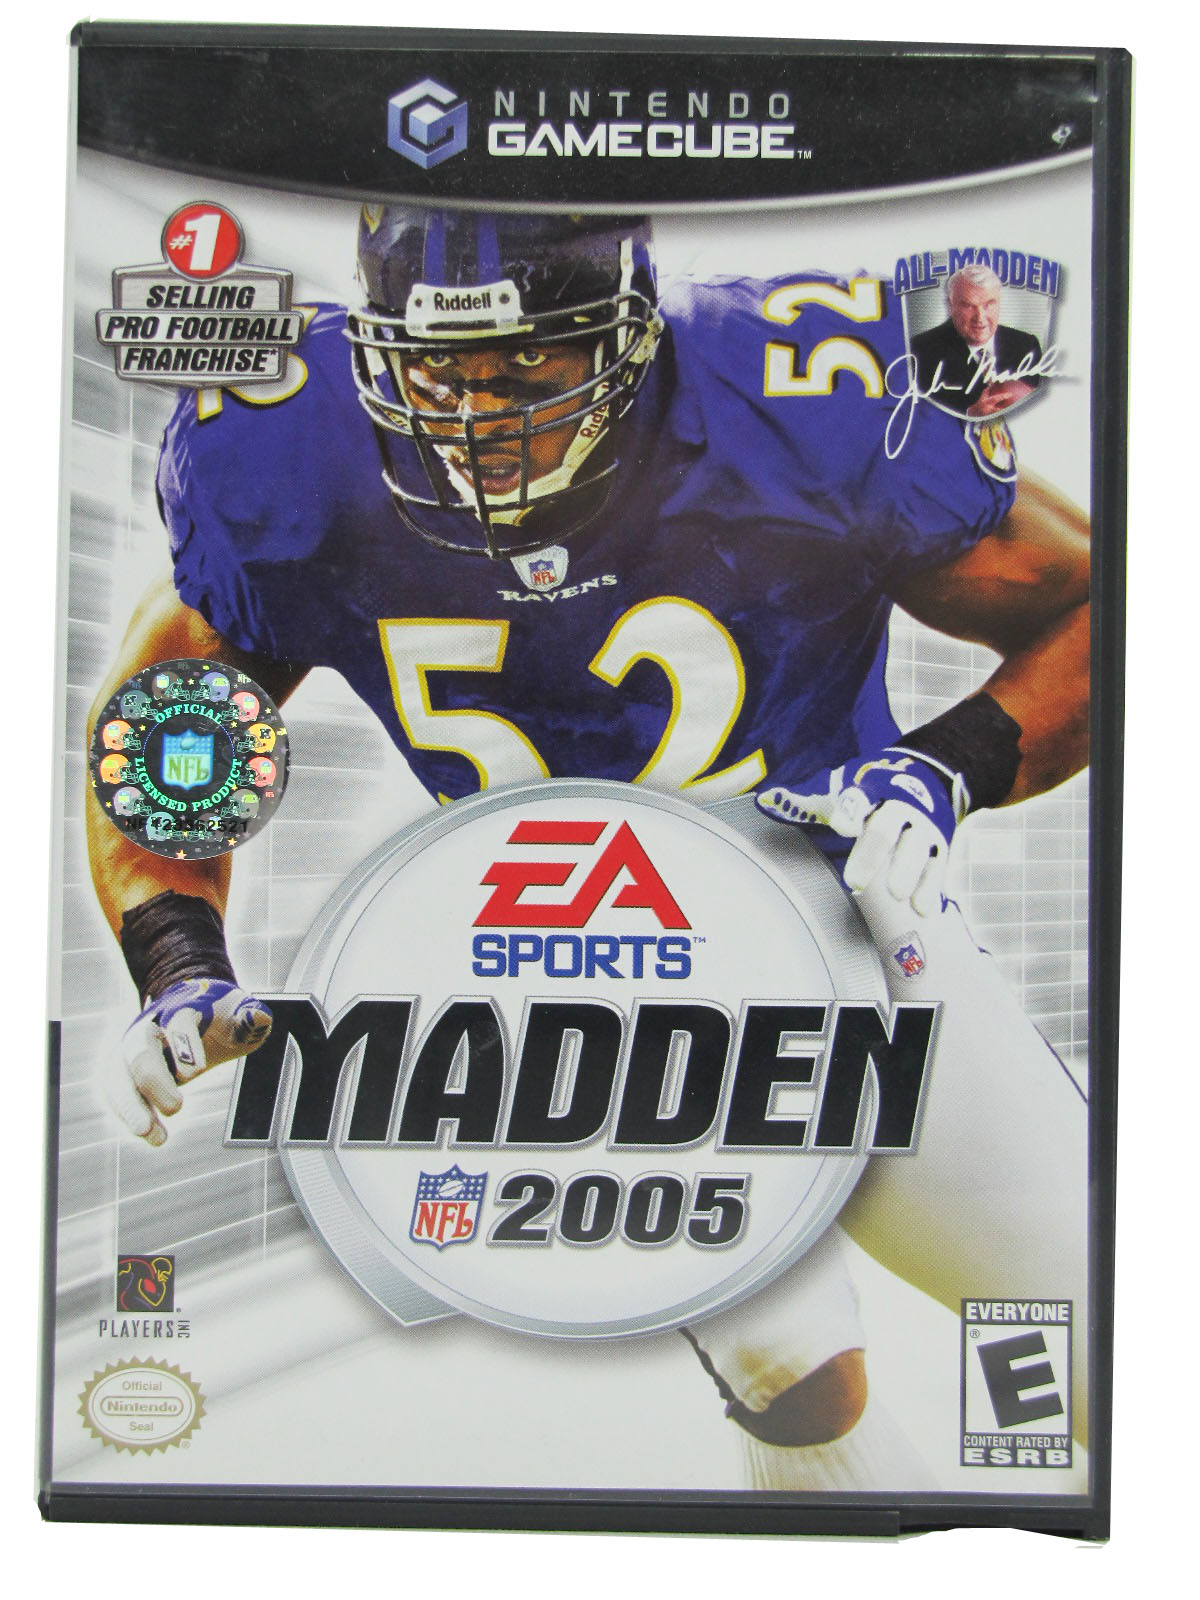 Game Cube Madden NFL 2005 Complete - 2004